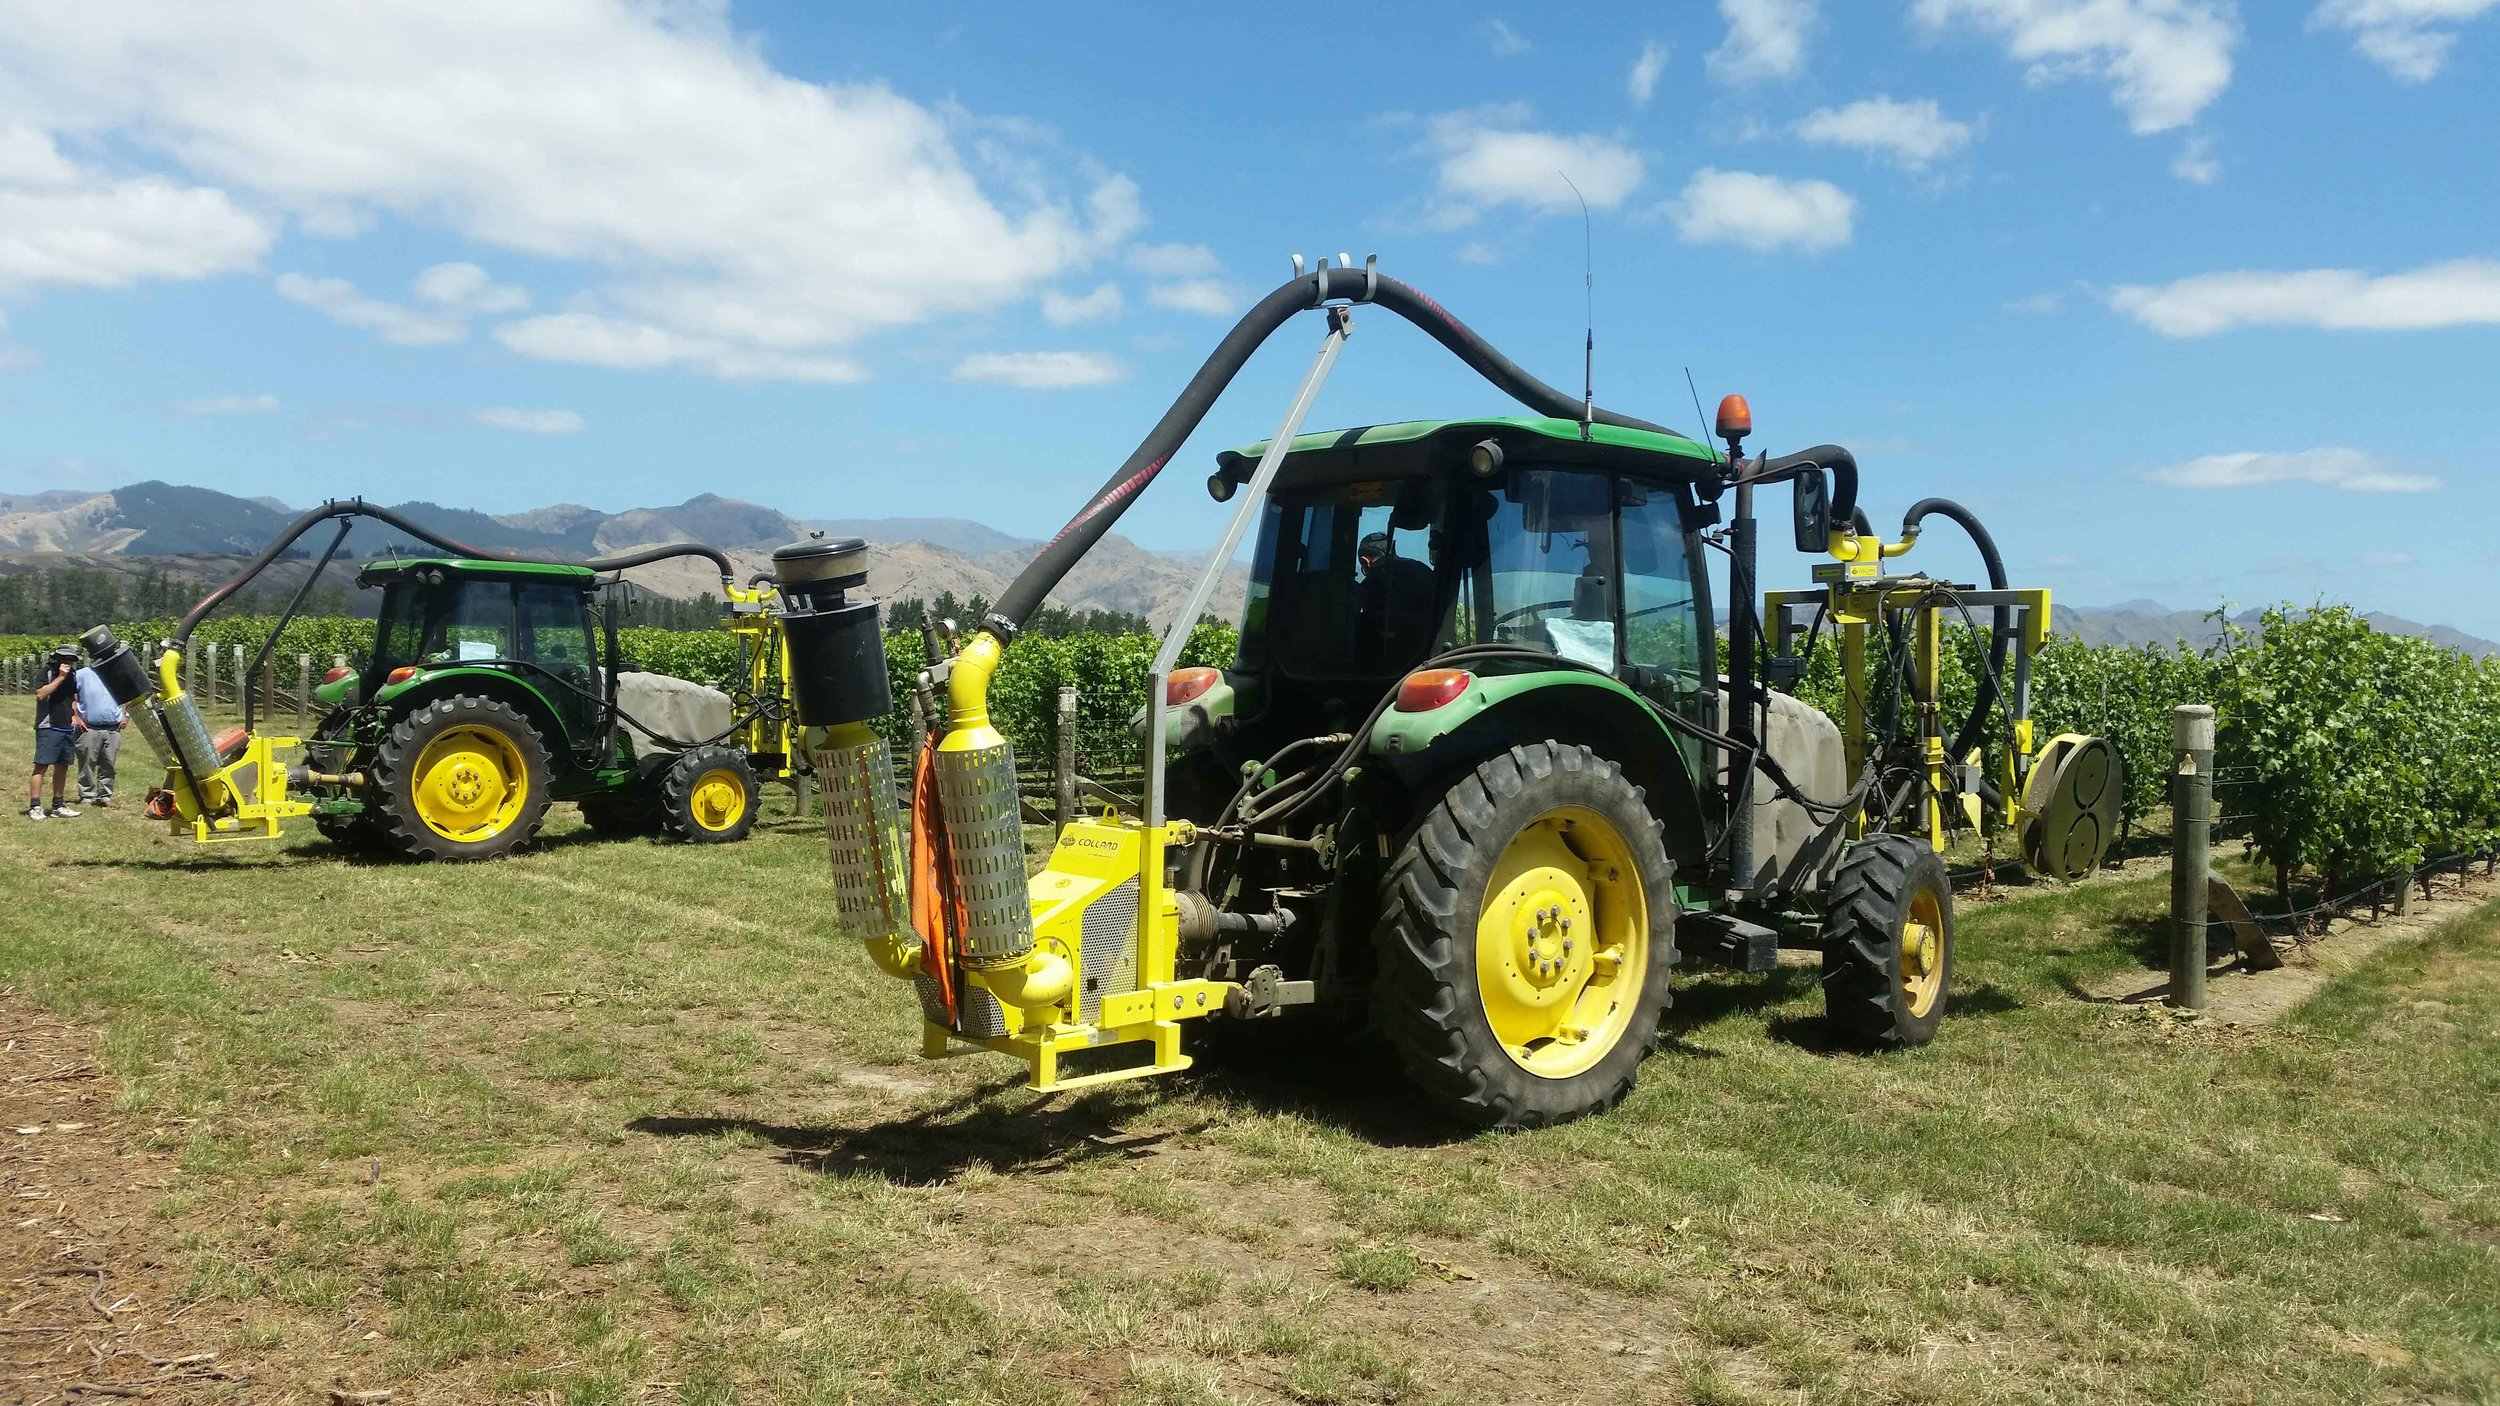 The right support - The harvest operation is supported by a fleet of gondolas, tractors and trucks.